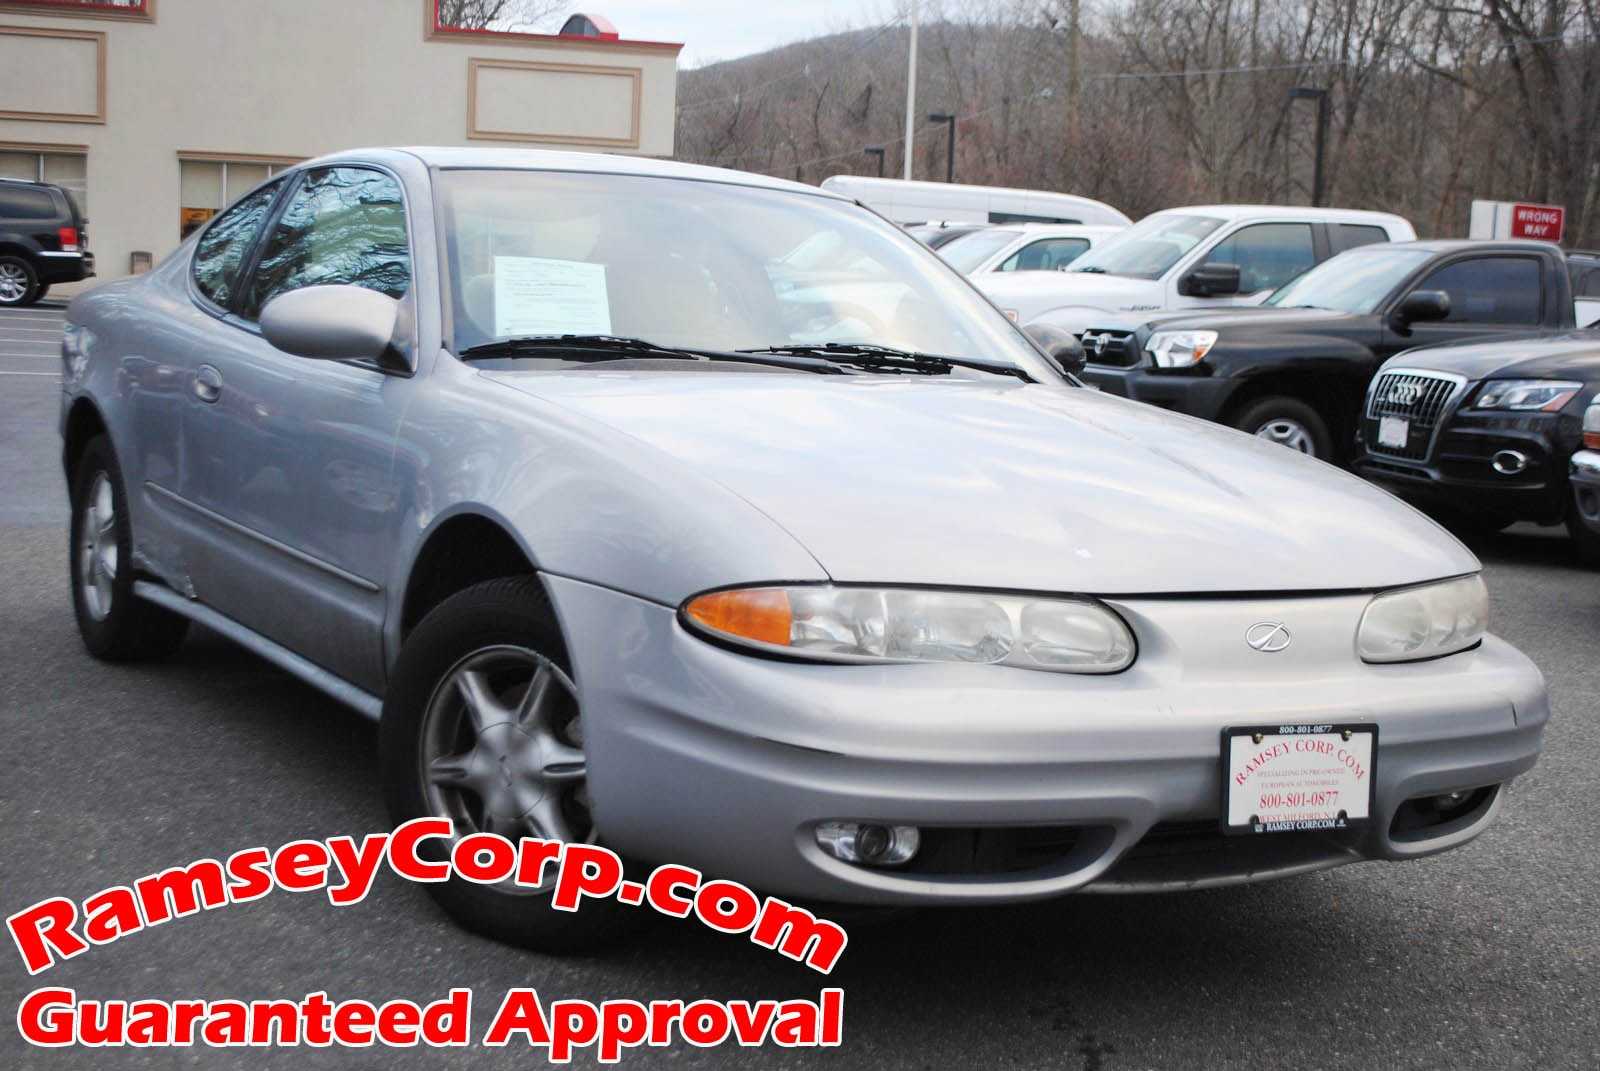 used 2000 oldsmobile alero for sale west milford nj rh ramseycorp com 2000 Oldsmobile Alero Interior 2000 Oldsmobile Alero Interior